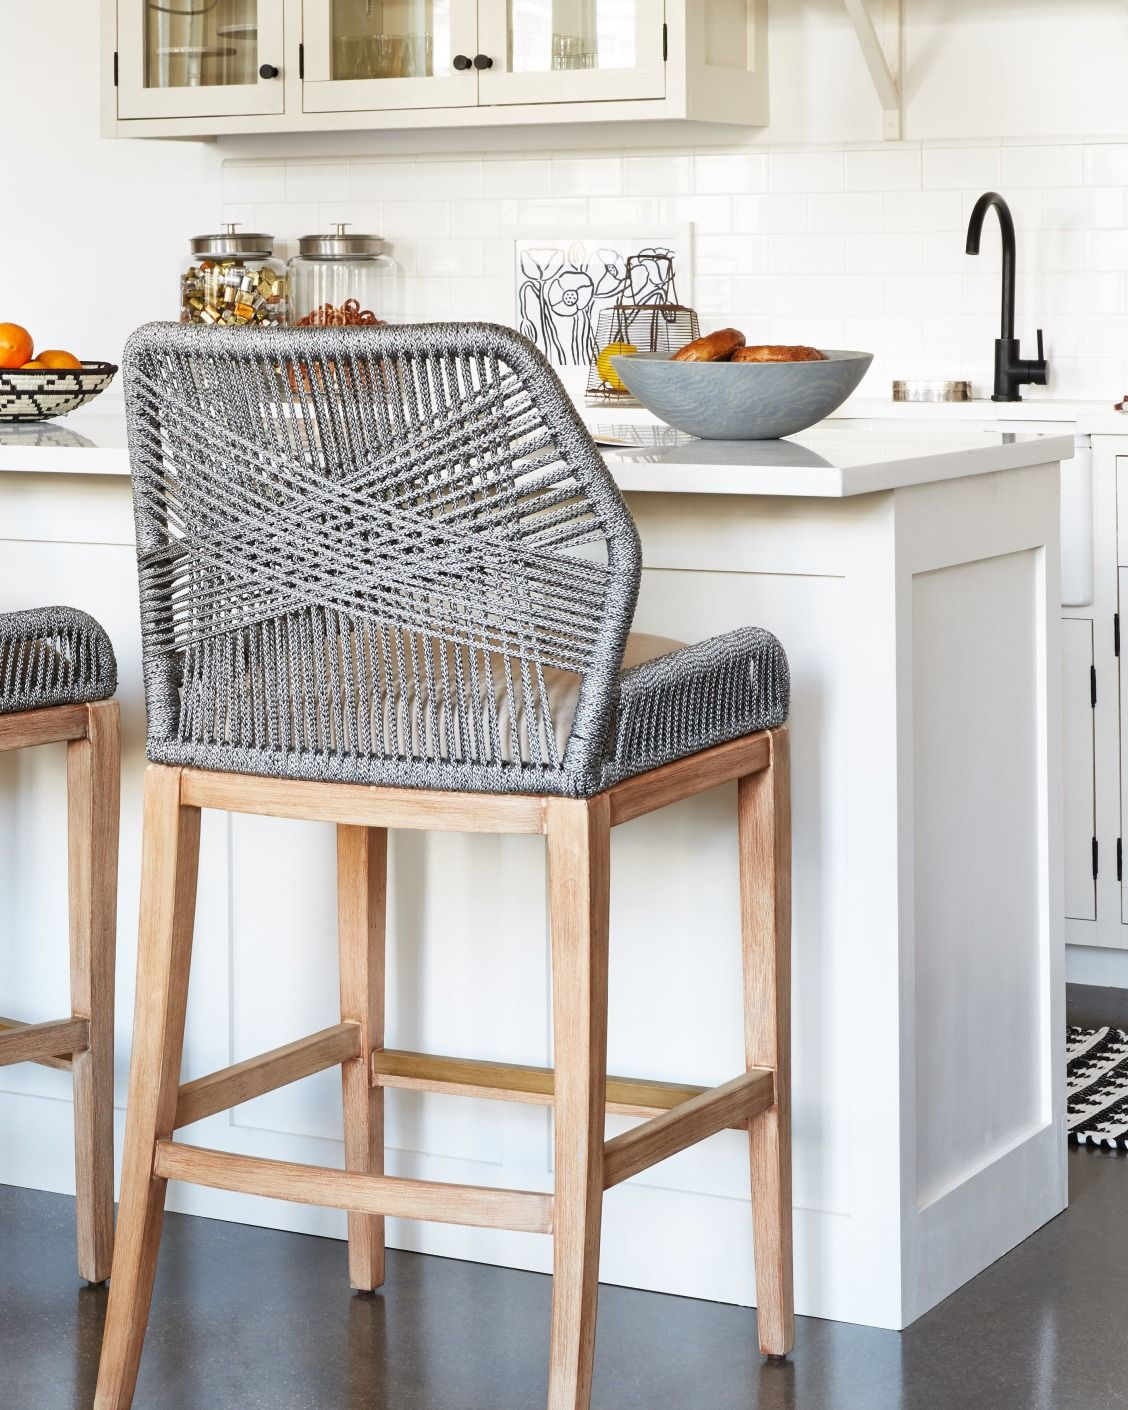 These woven rope counter stools are such a fun, unexpected ...